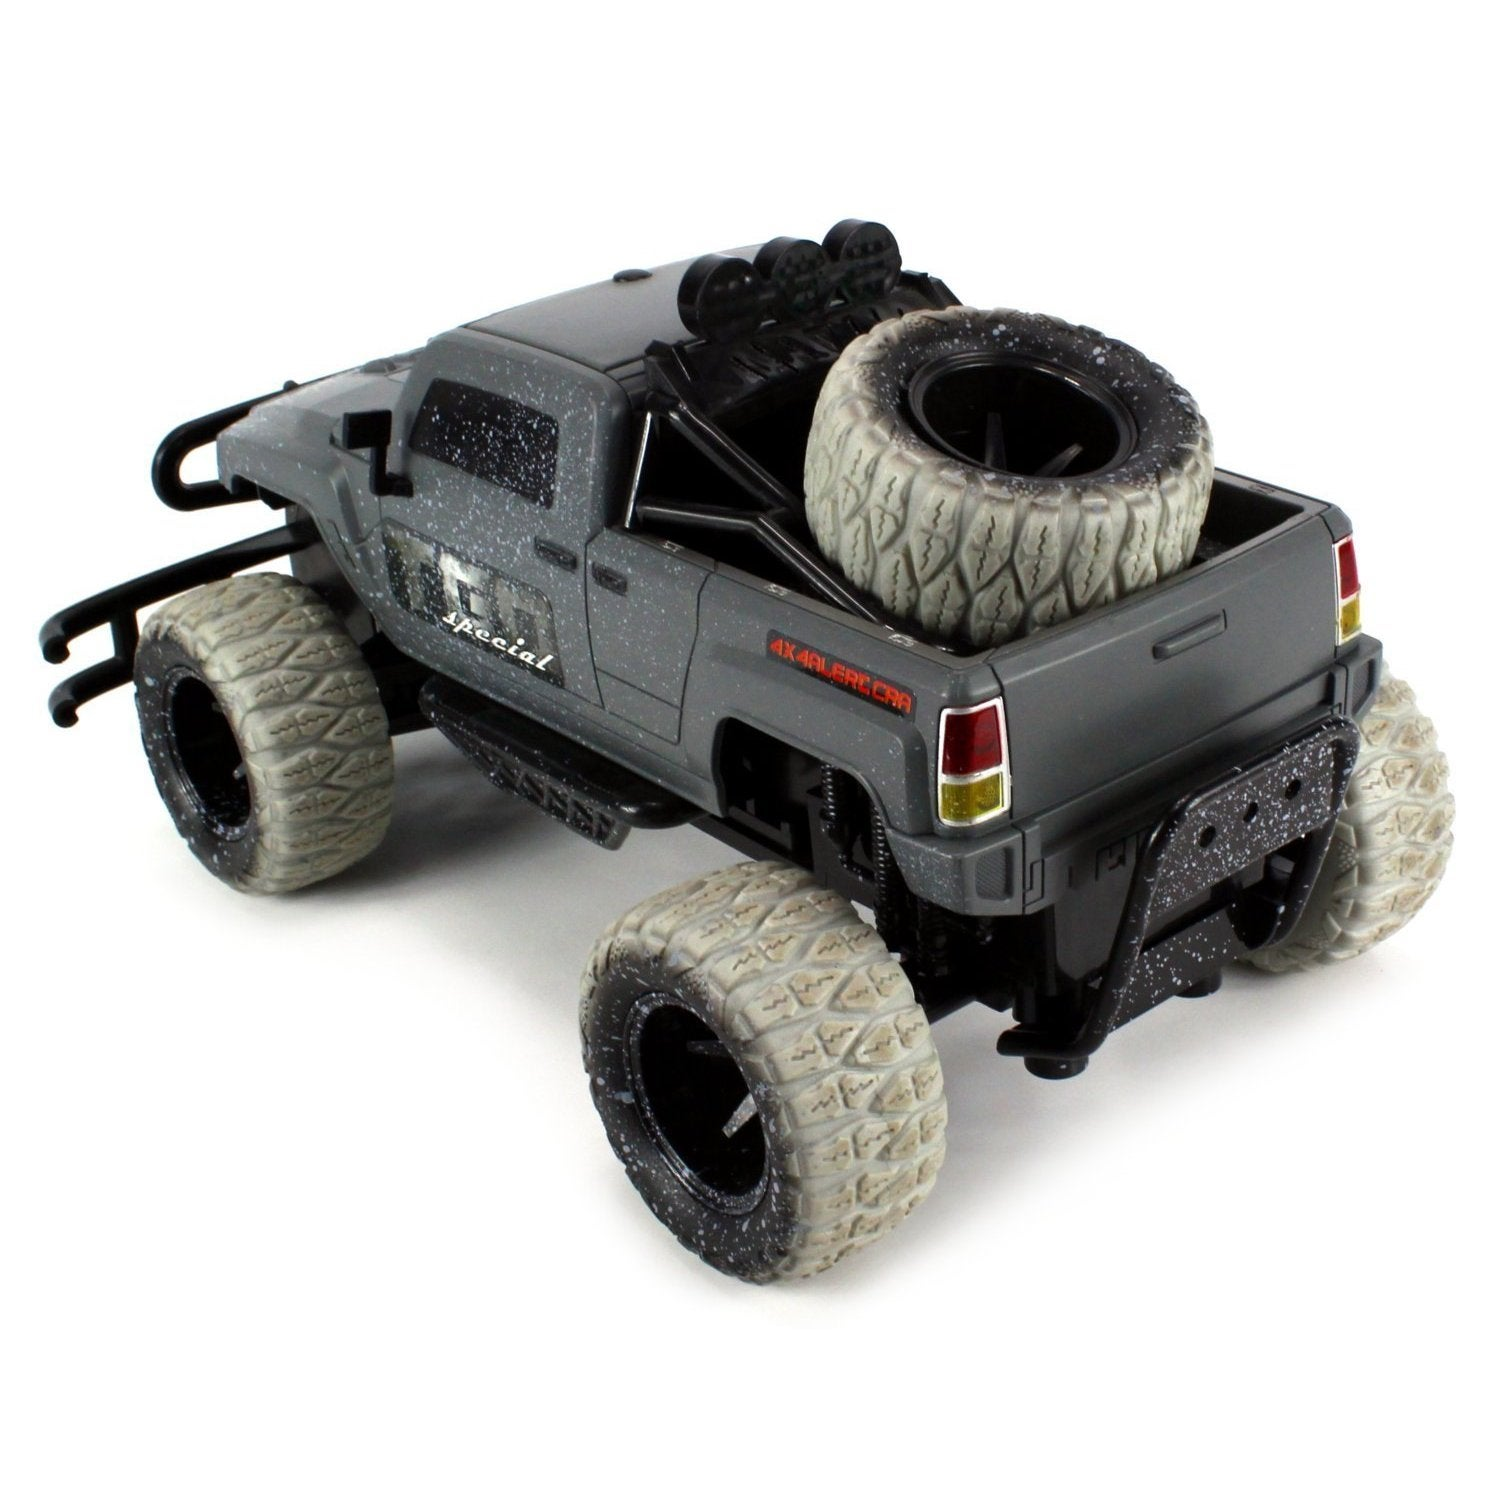 Velocity Toys Mud Monster Hummer H3t Pickup Battery Operated Remote Control Rc Off Road Truck 1 10 Scale Free Shipping Today